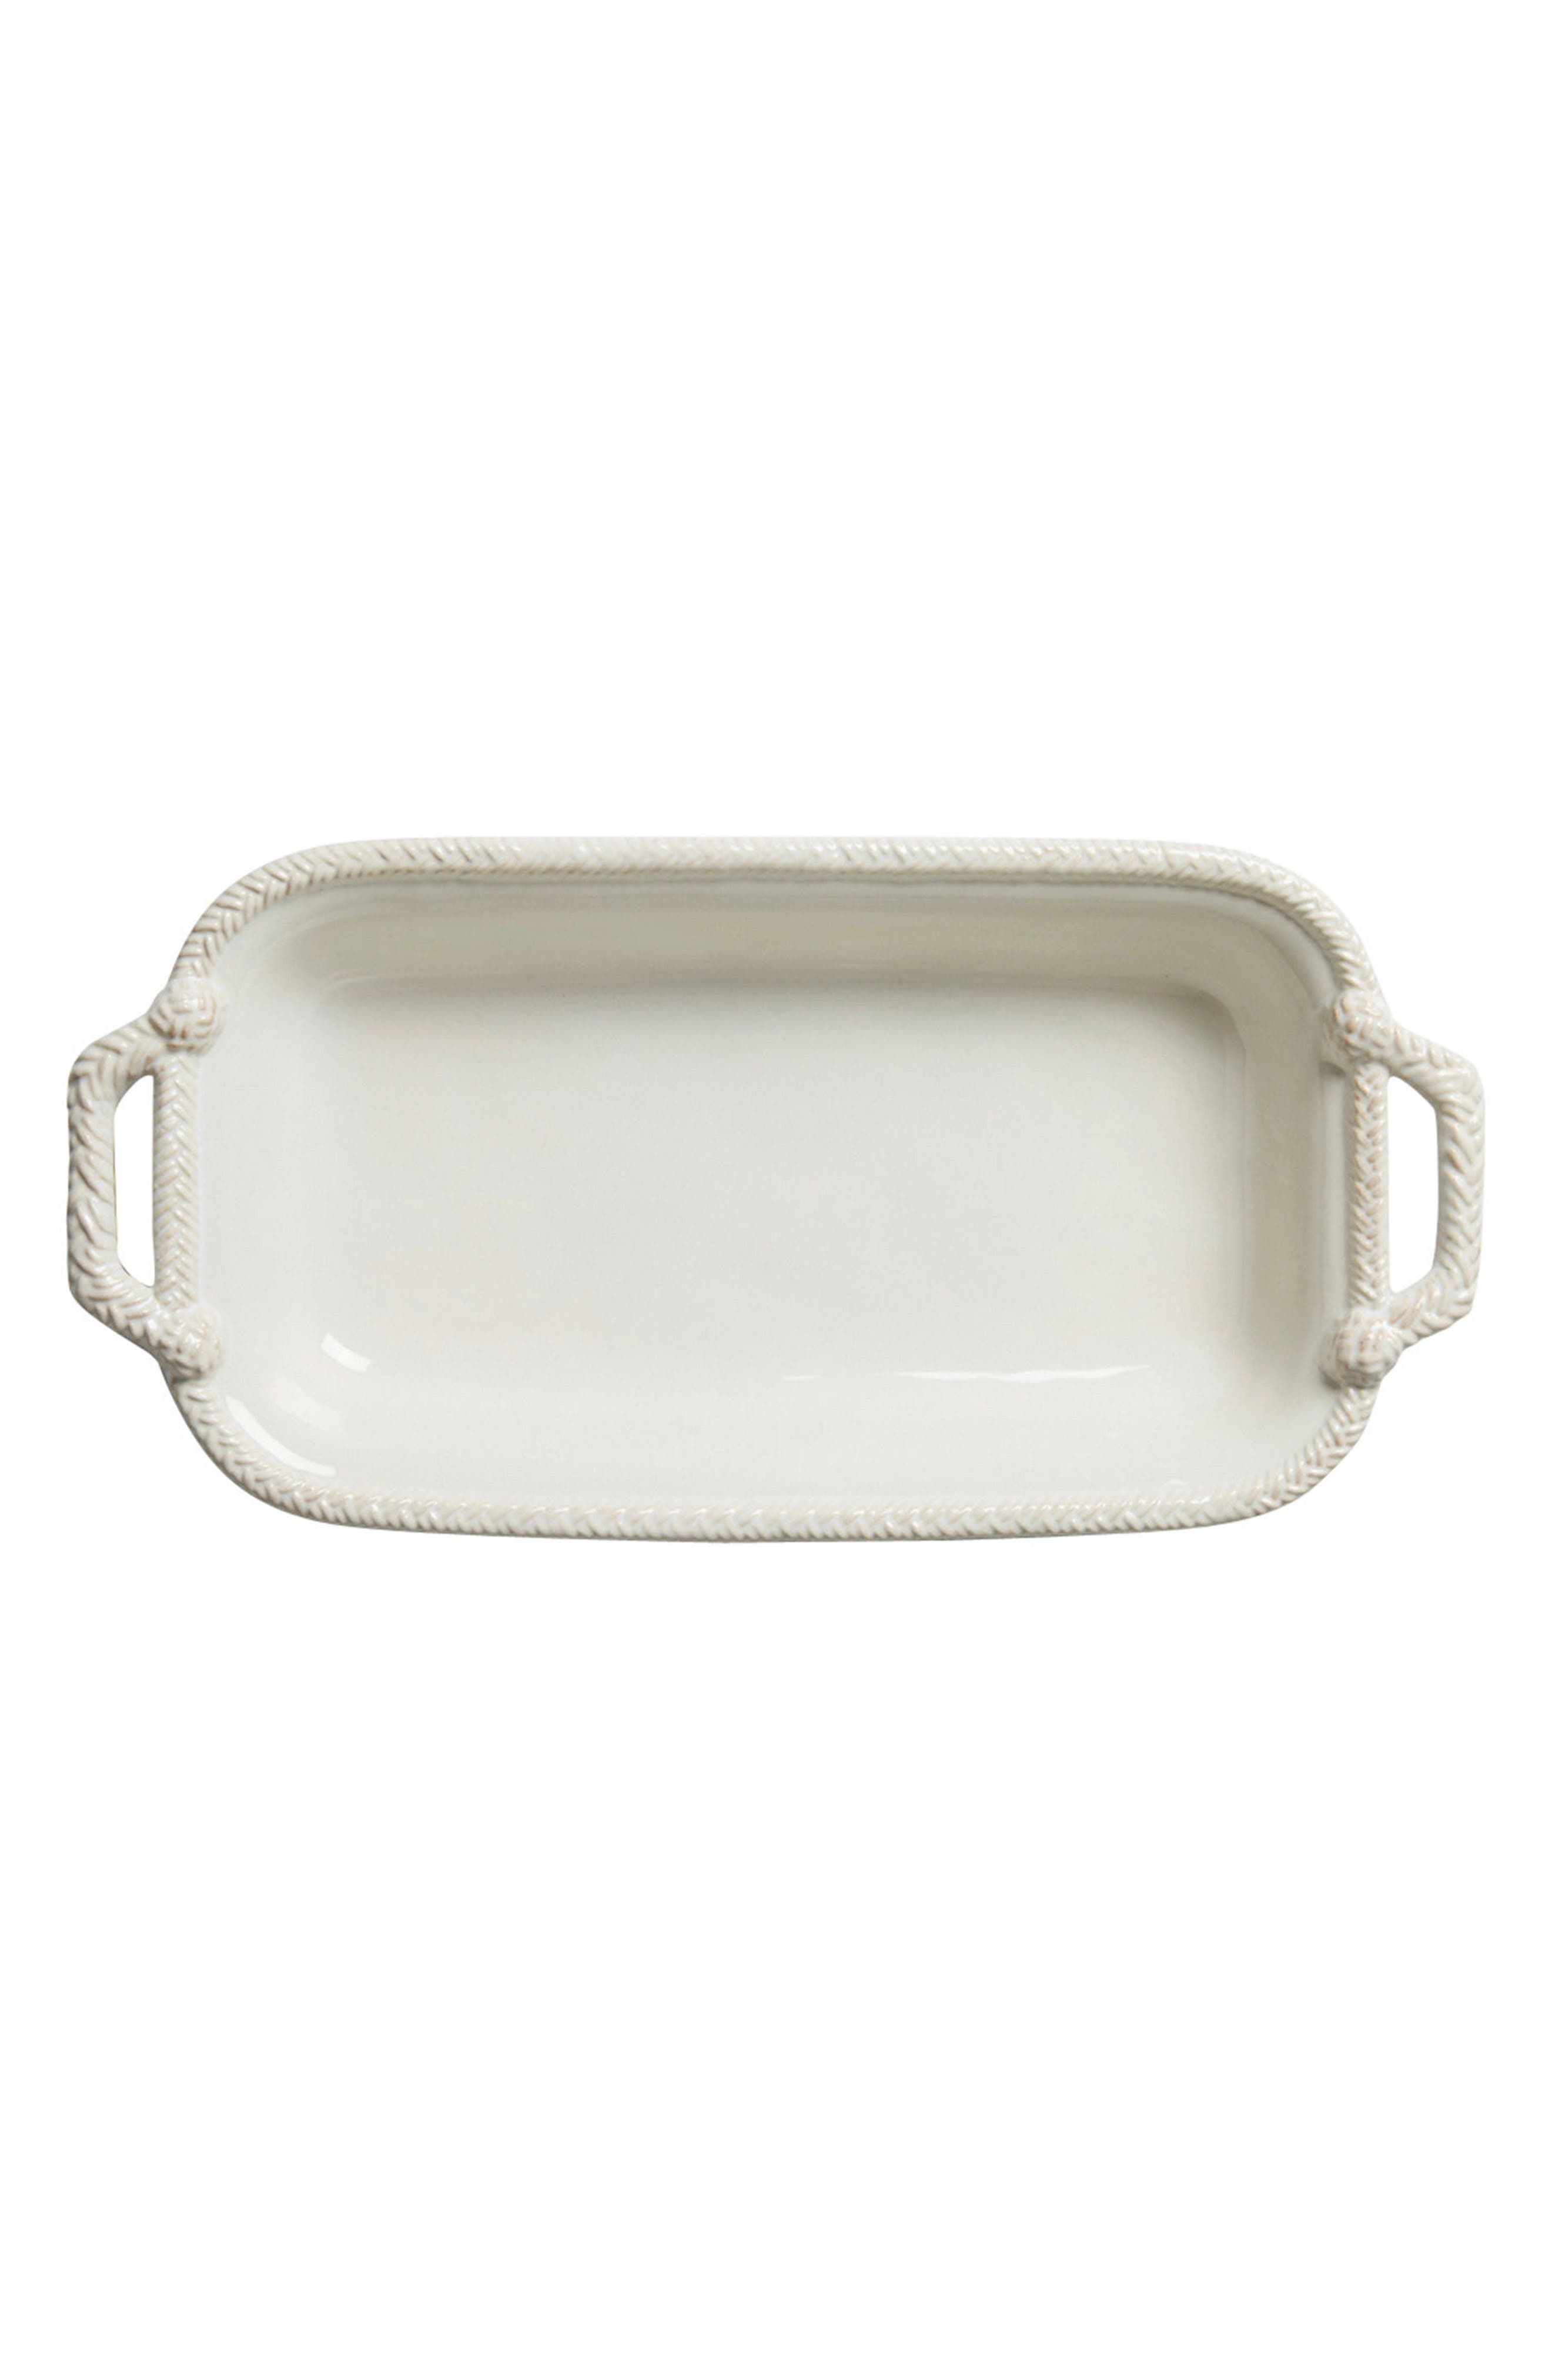 Le Panier 1.5-Quart Rectangular Baking Dish,                             Main thumbnail 1, color,                             WHITEWASH